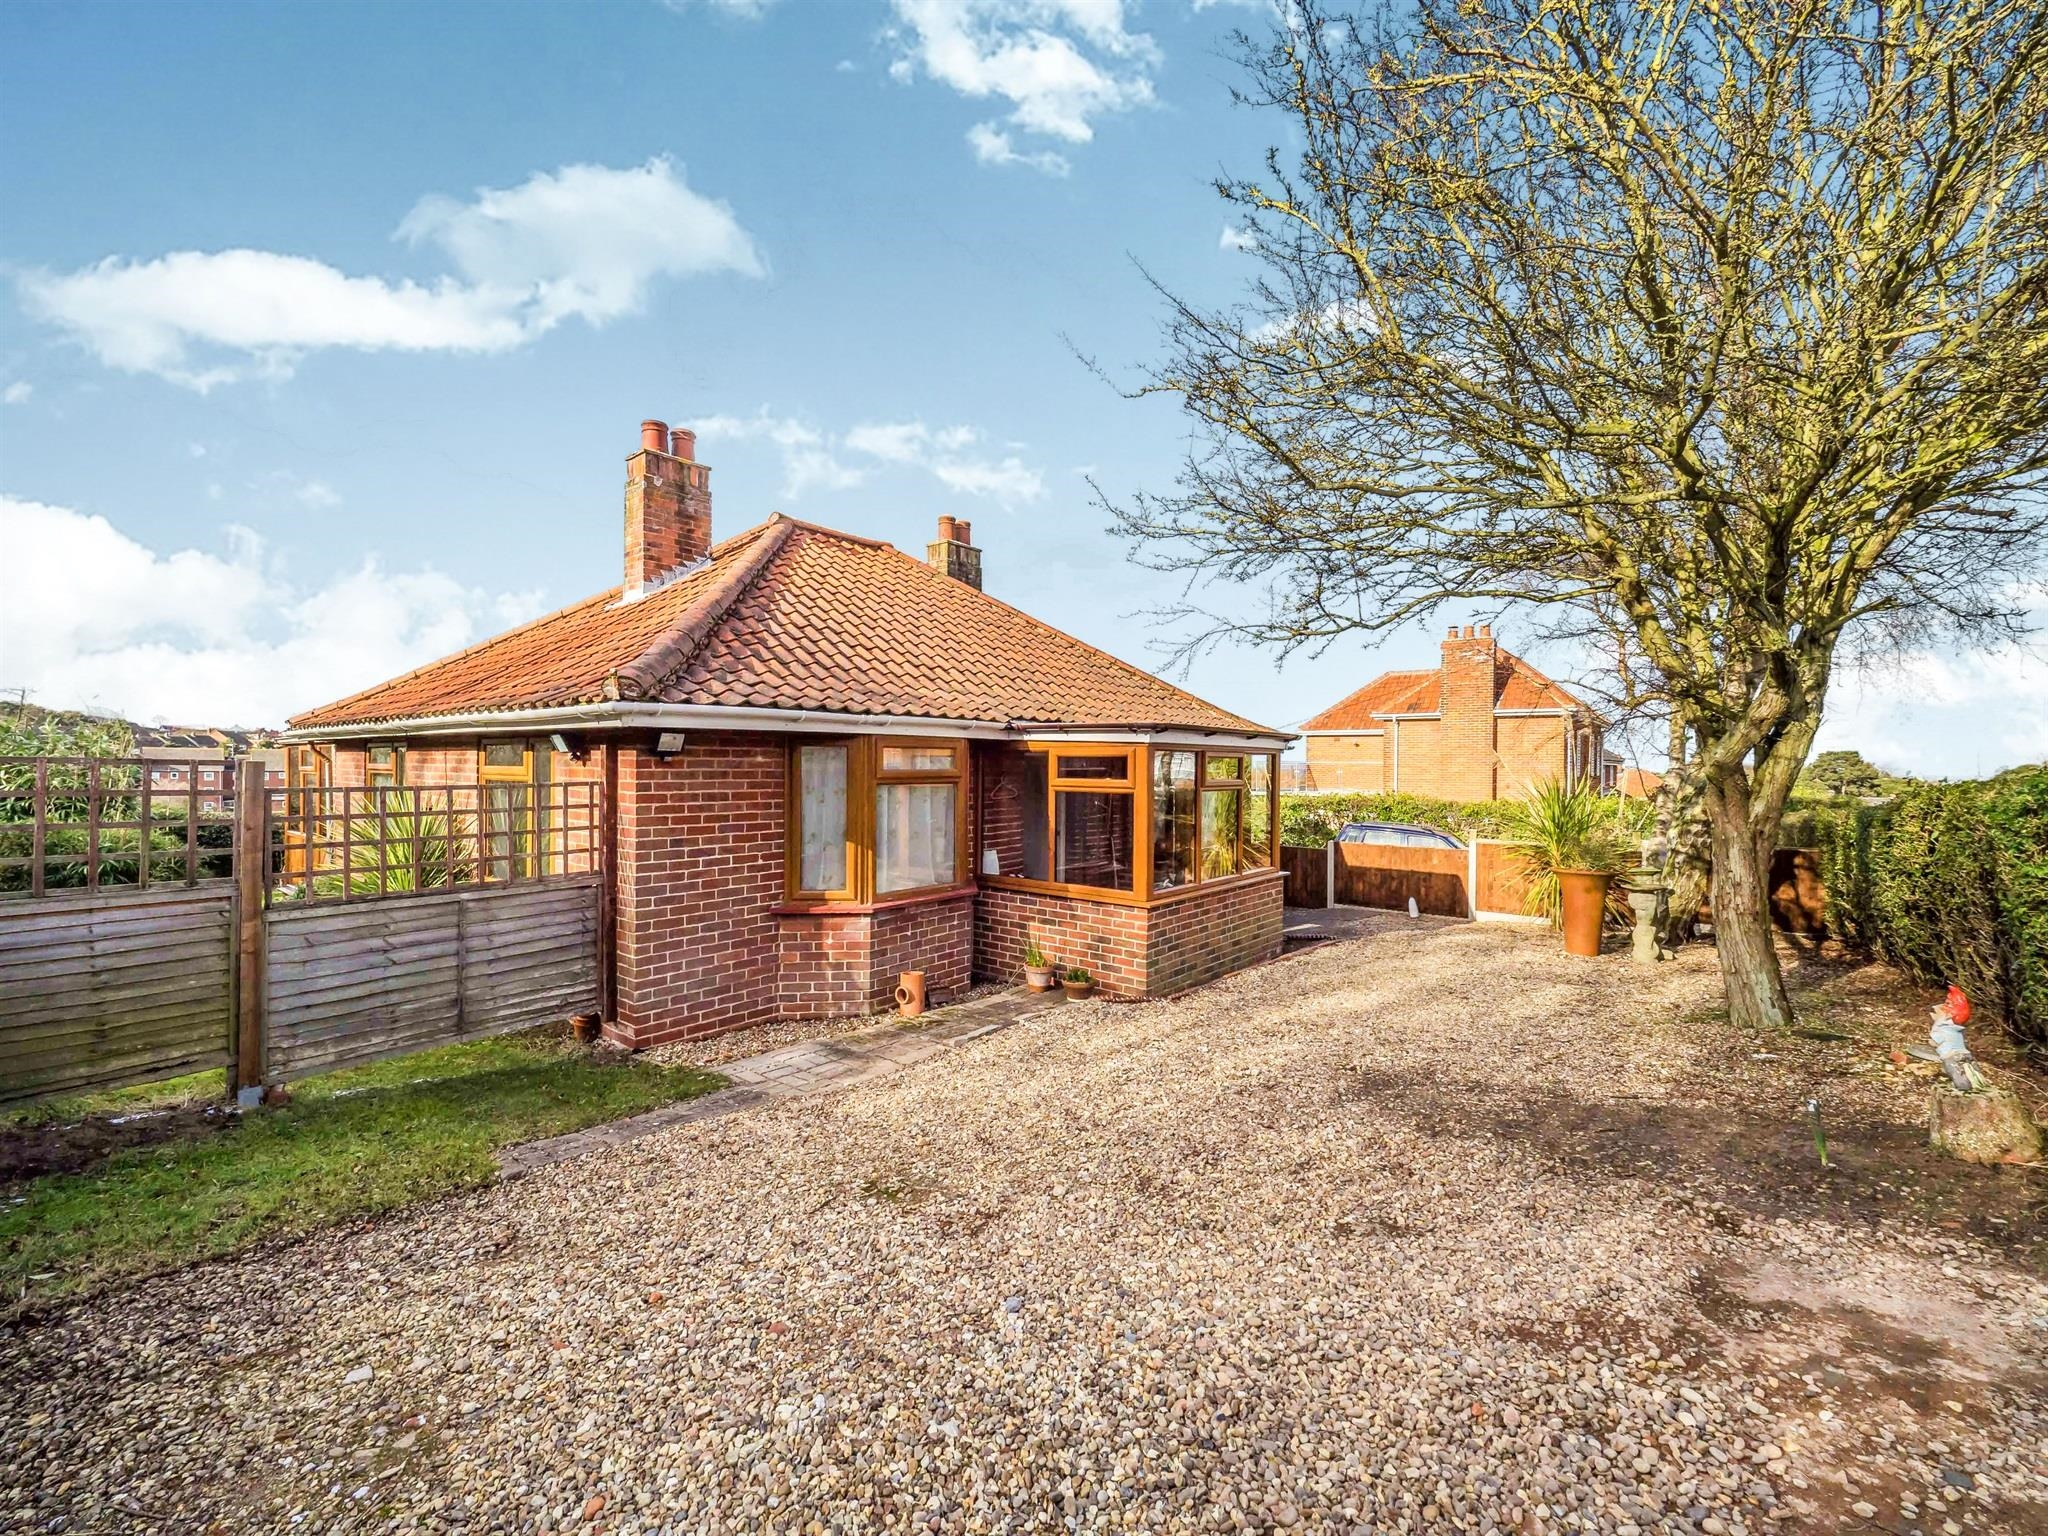 3 Bedroom Detached Bungalow For Sale Arbor Road Cromer Nr27 9dw